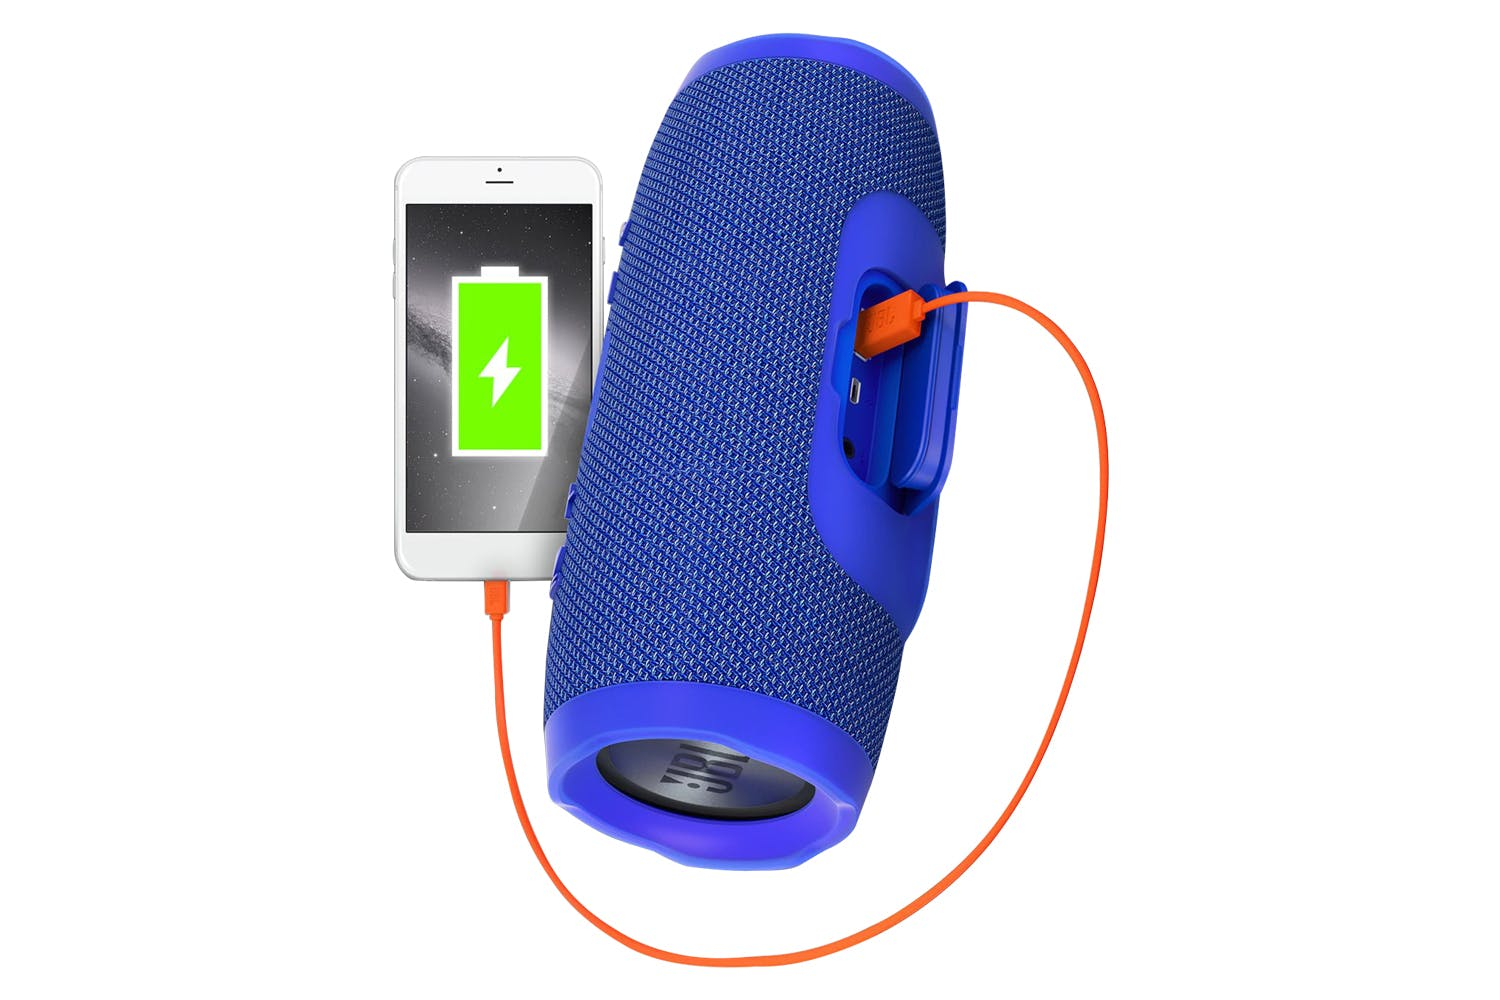 Jbl Charge 3 Bluetooth Speaker Blue Ireland Mini Portable Wireless Charger 1